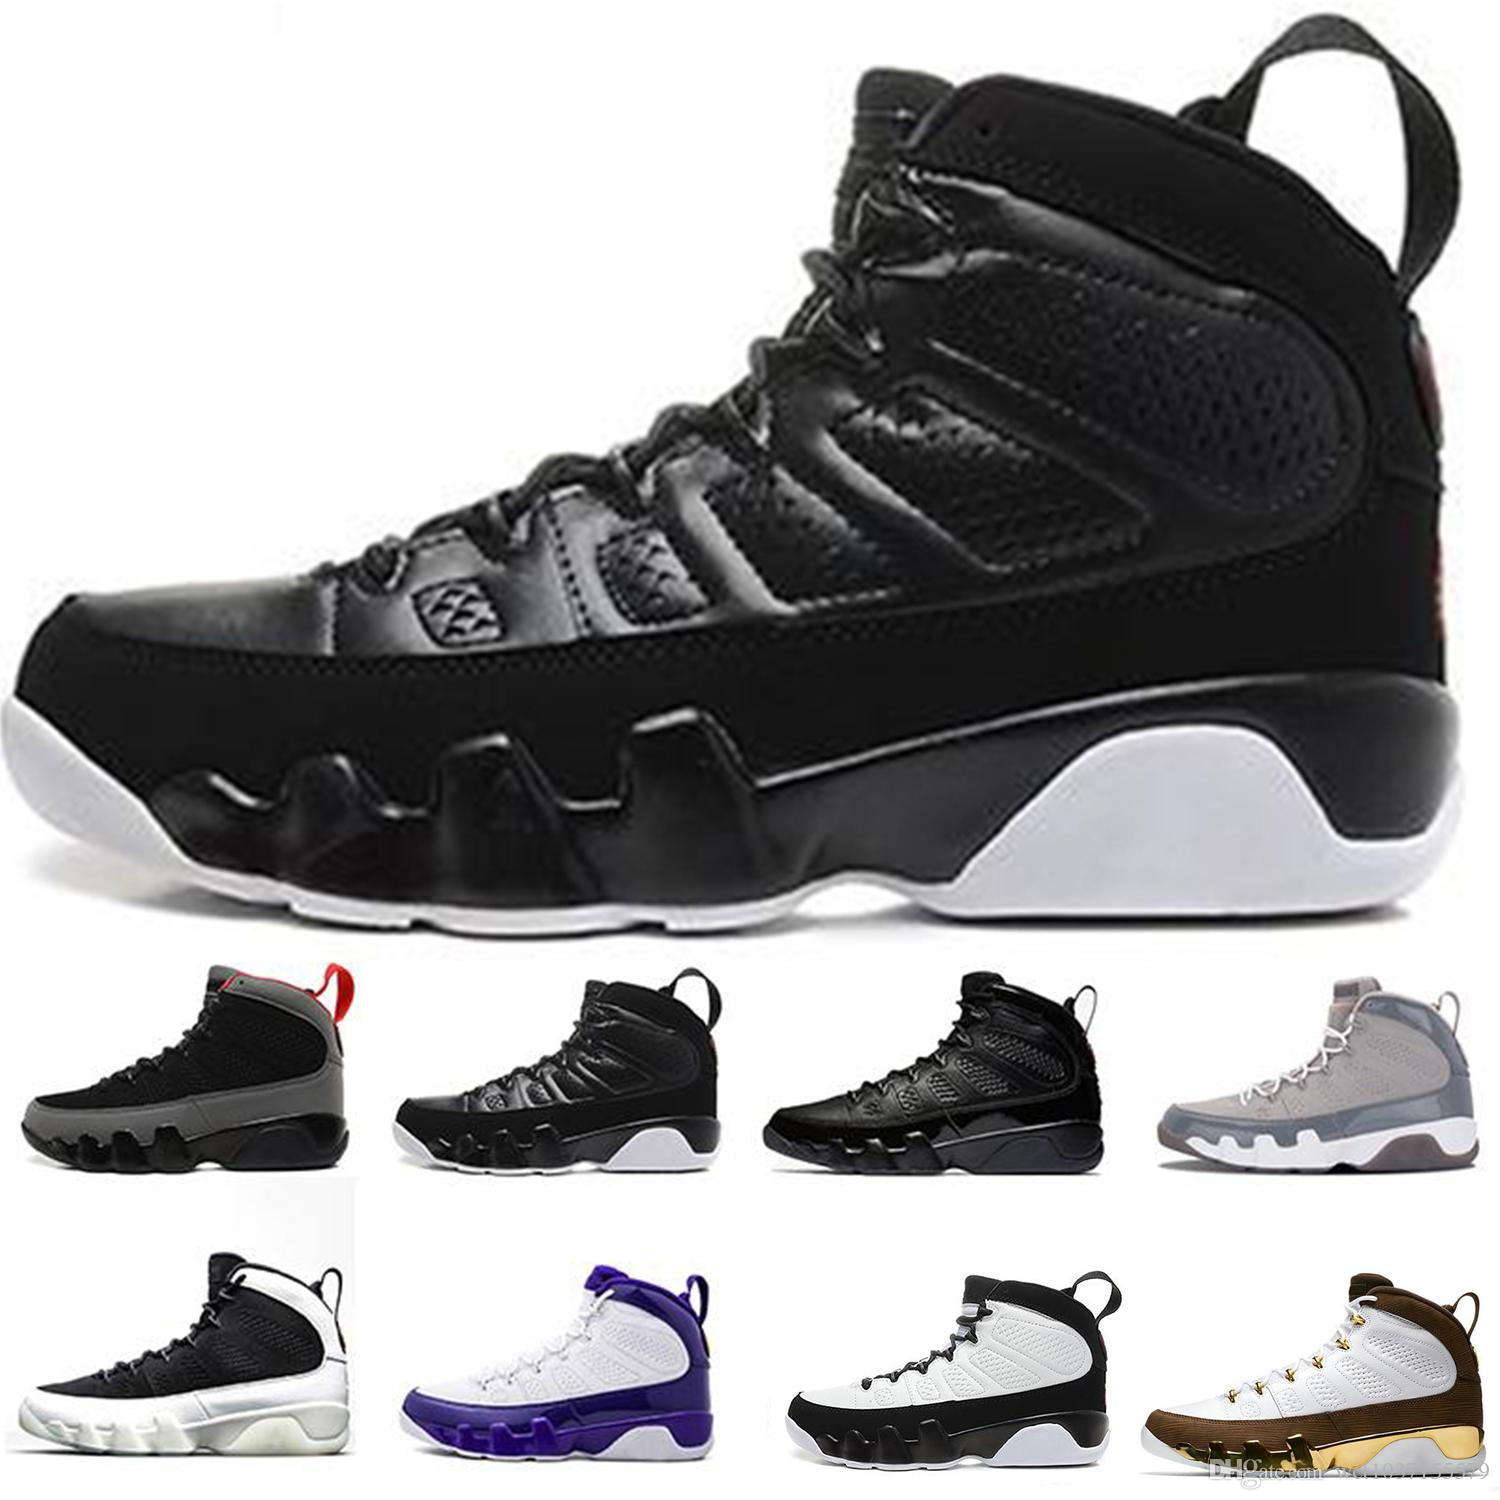 c7c245e768e47a 9 9s Men Basketball Shoes LA Bred OG Space Jam Tour Yellow PE Anthracite  The Spirit Johnny Kilroy Sports Trainers Sneakers Basketball Shoes For  Women Cool ...